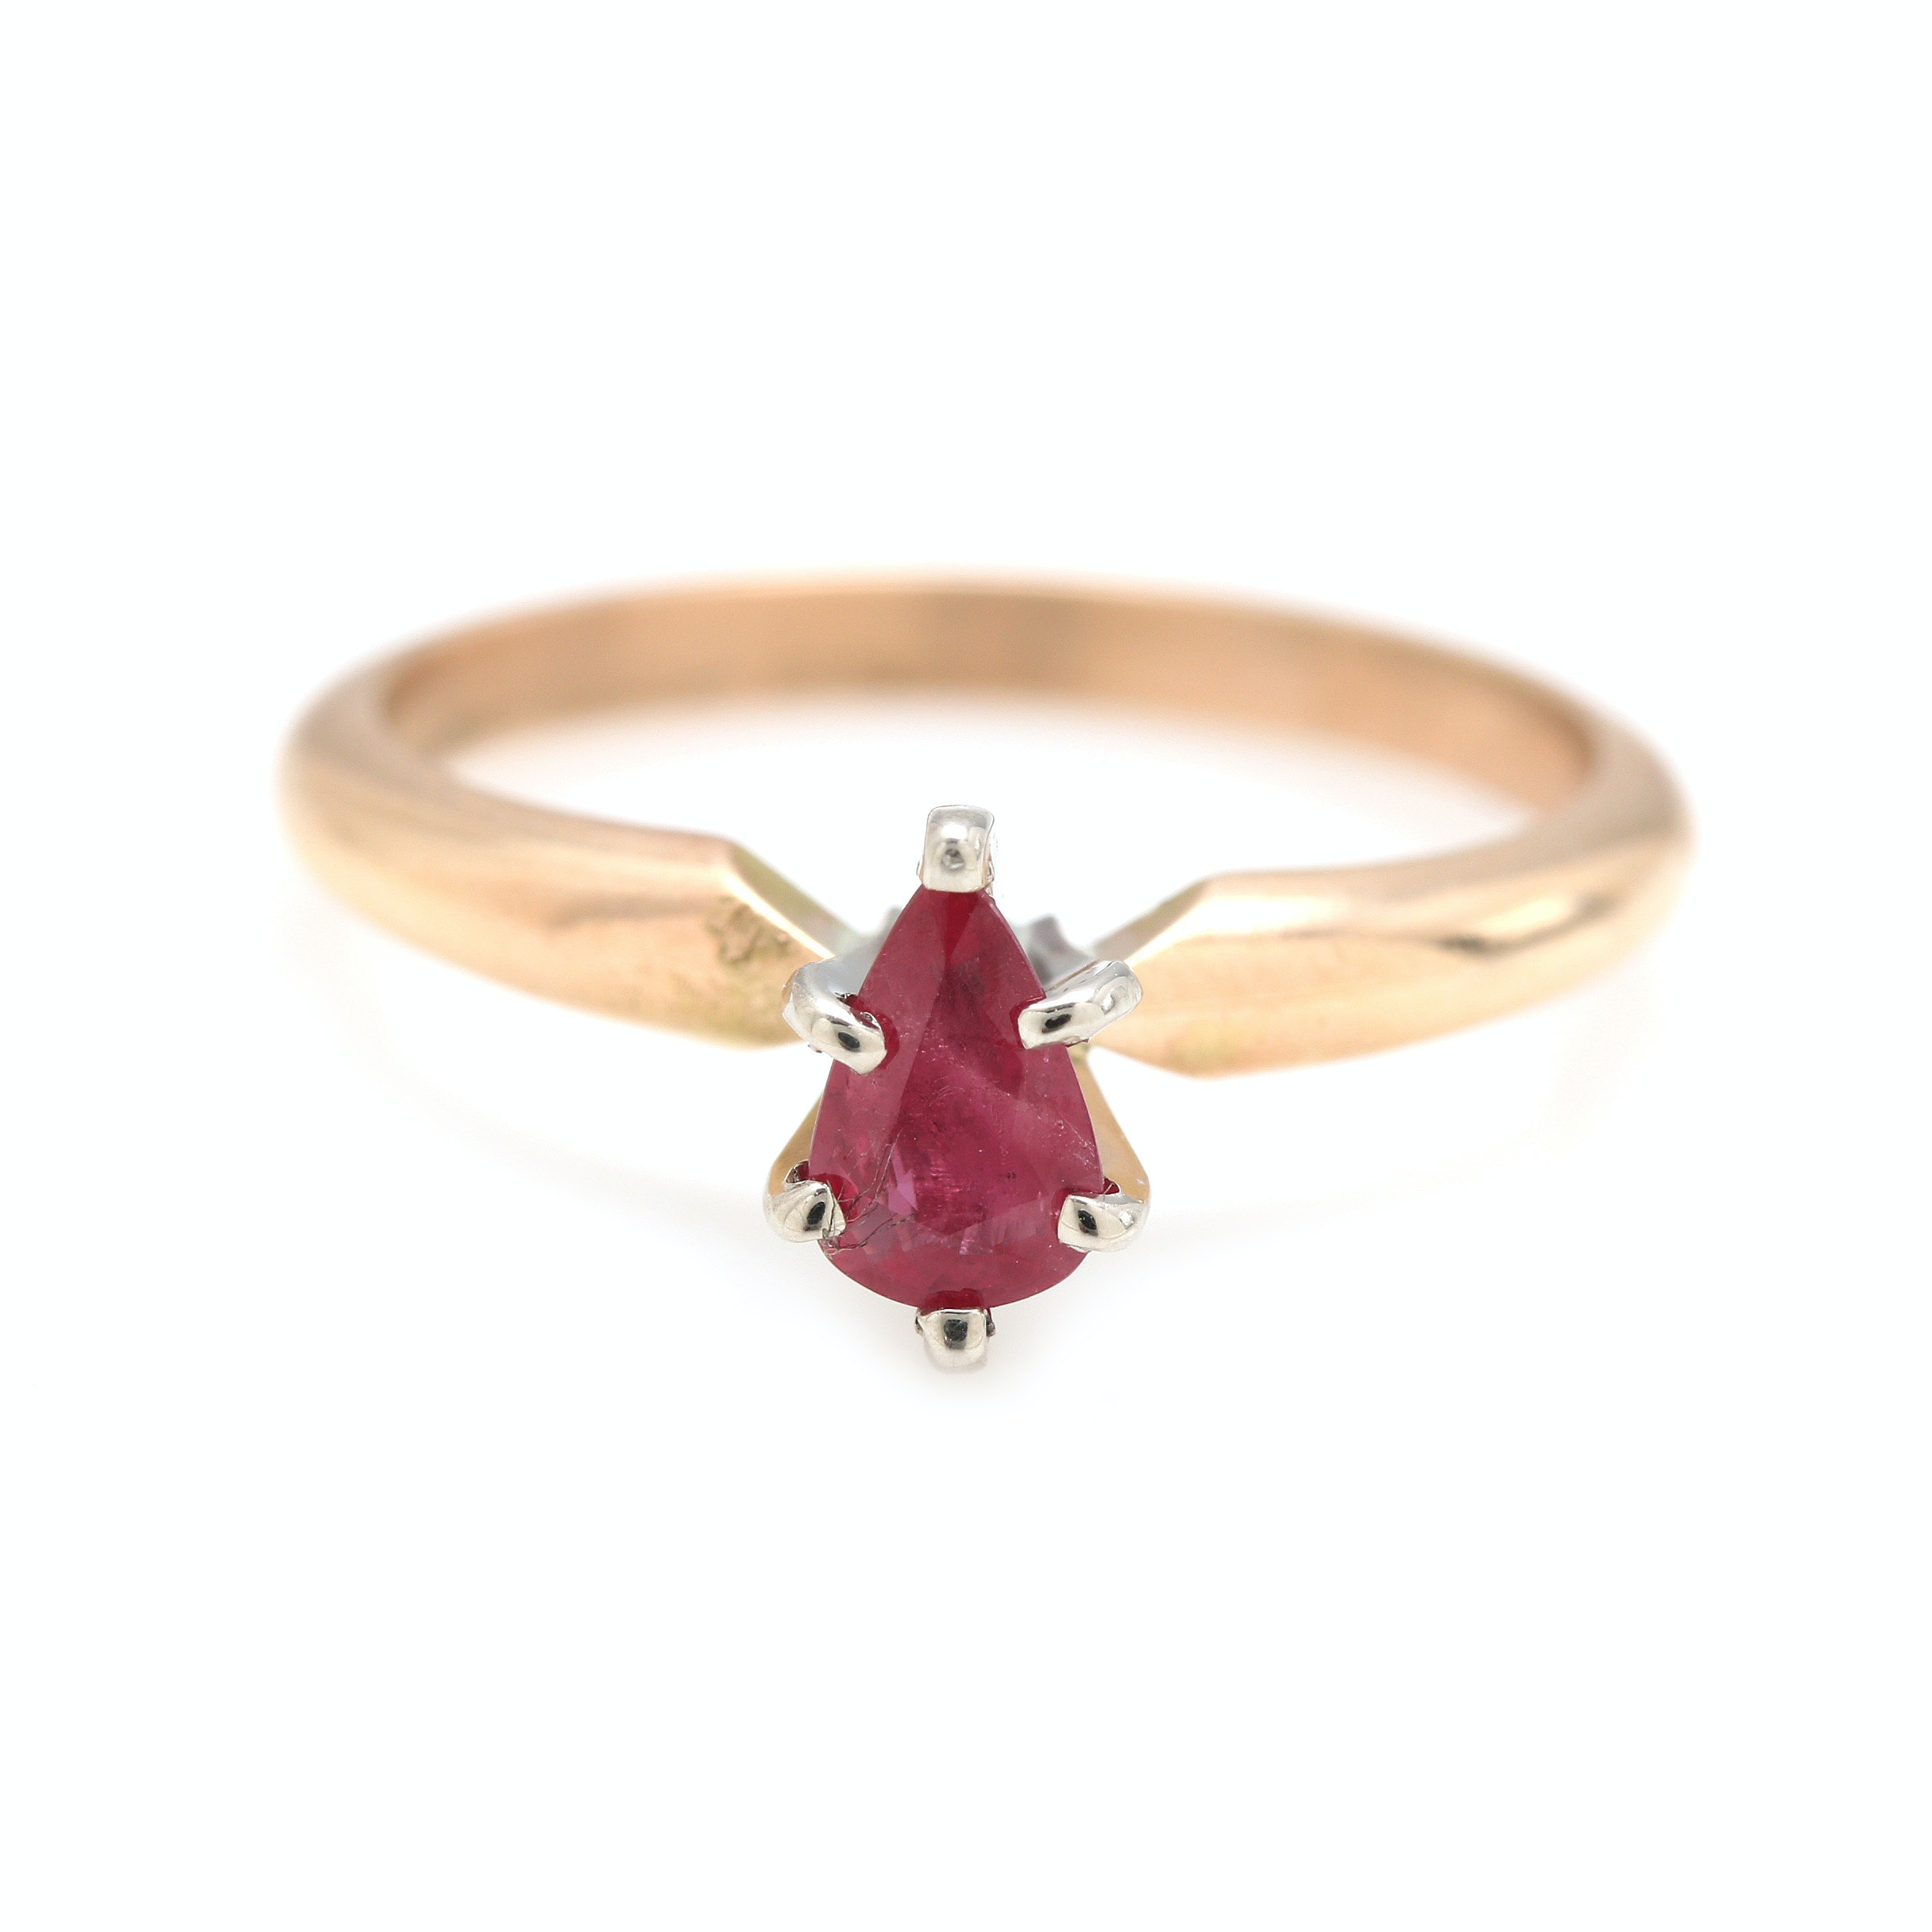 14K Yellow Gold Solitaire Ruby Ring